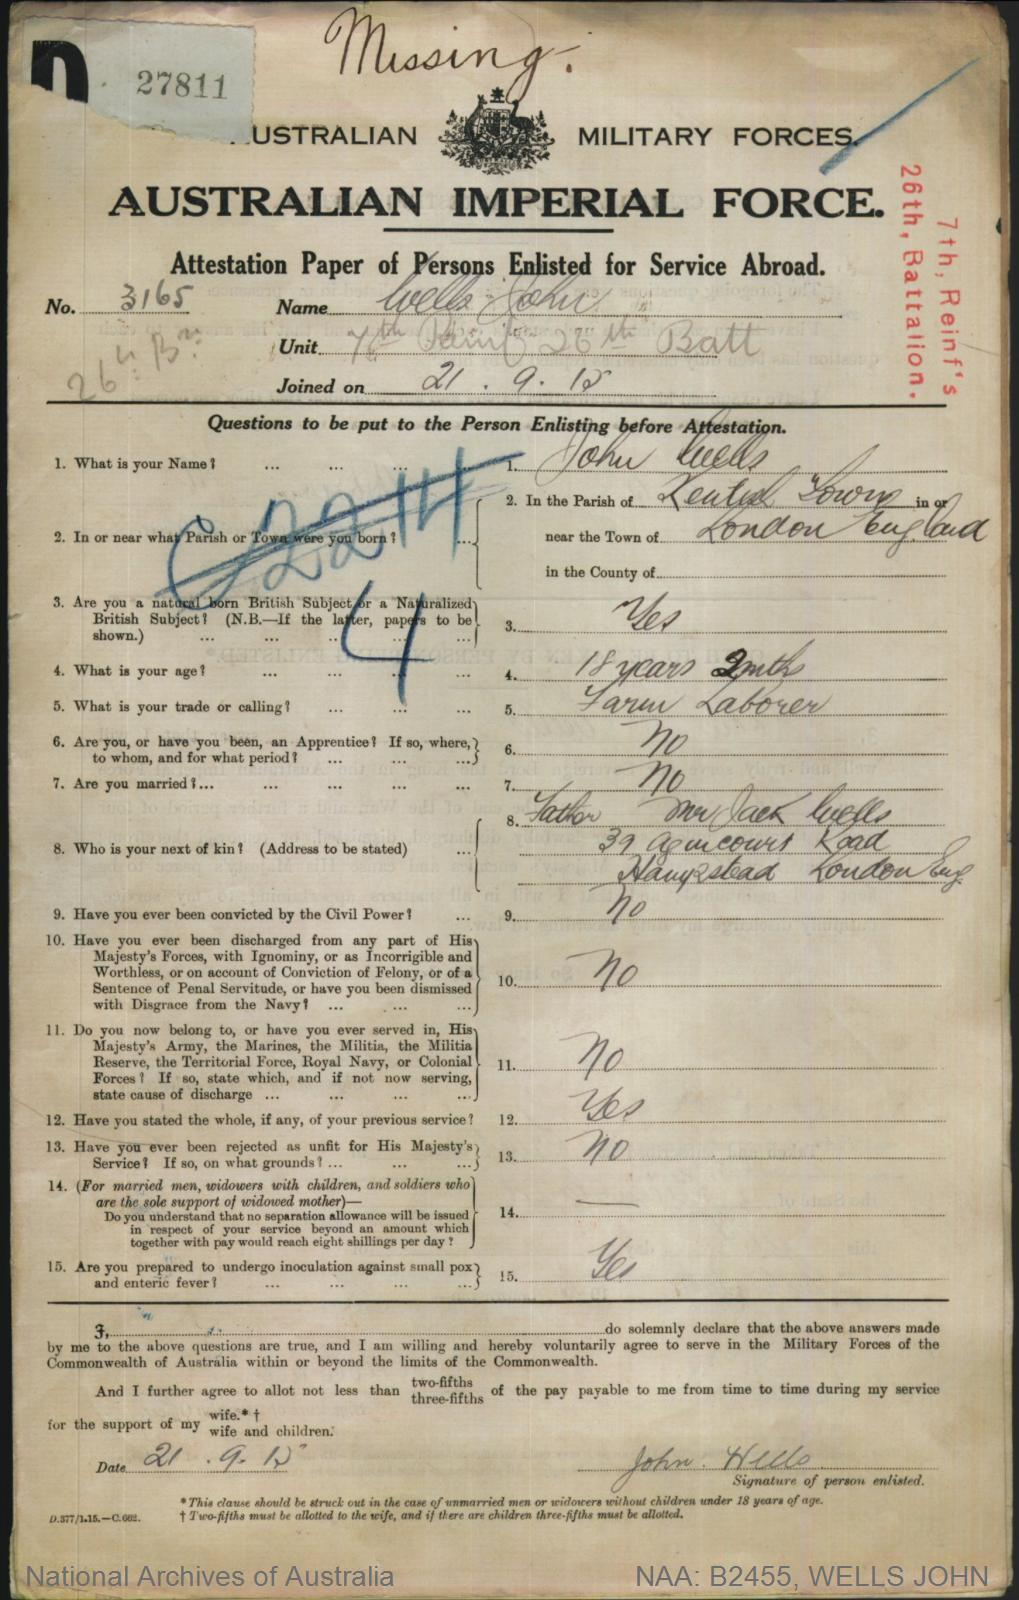 WELLS John : Service Number - 3165 : Place of Birth - London England : Place of Enlistment - Brisbane QLD : Next of Kin - (Father) WELLS Jack